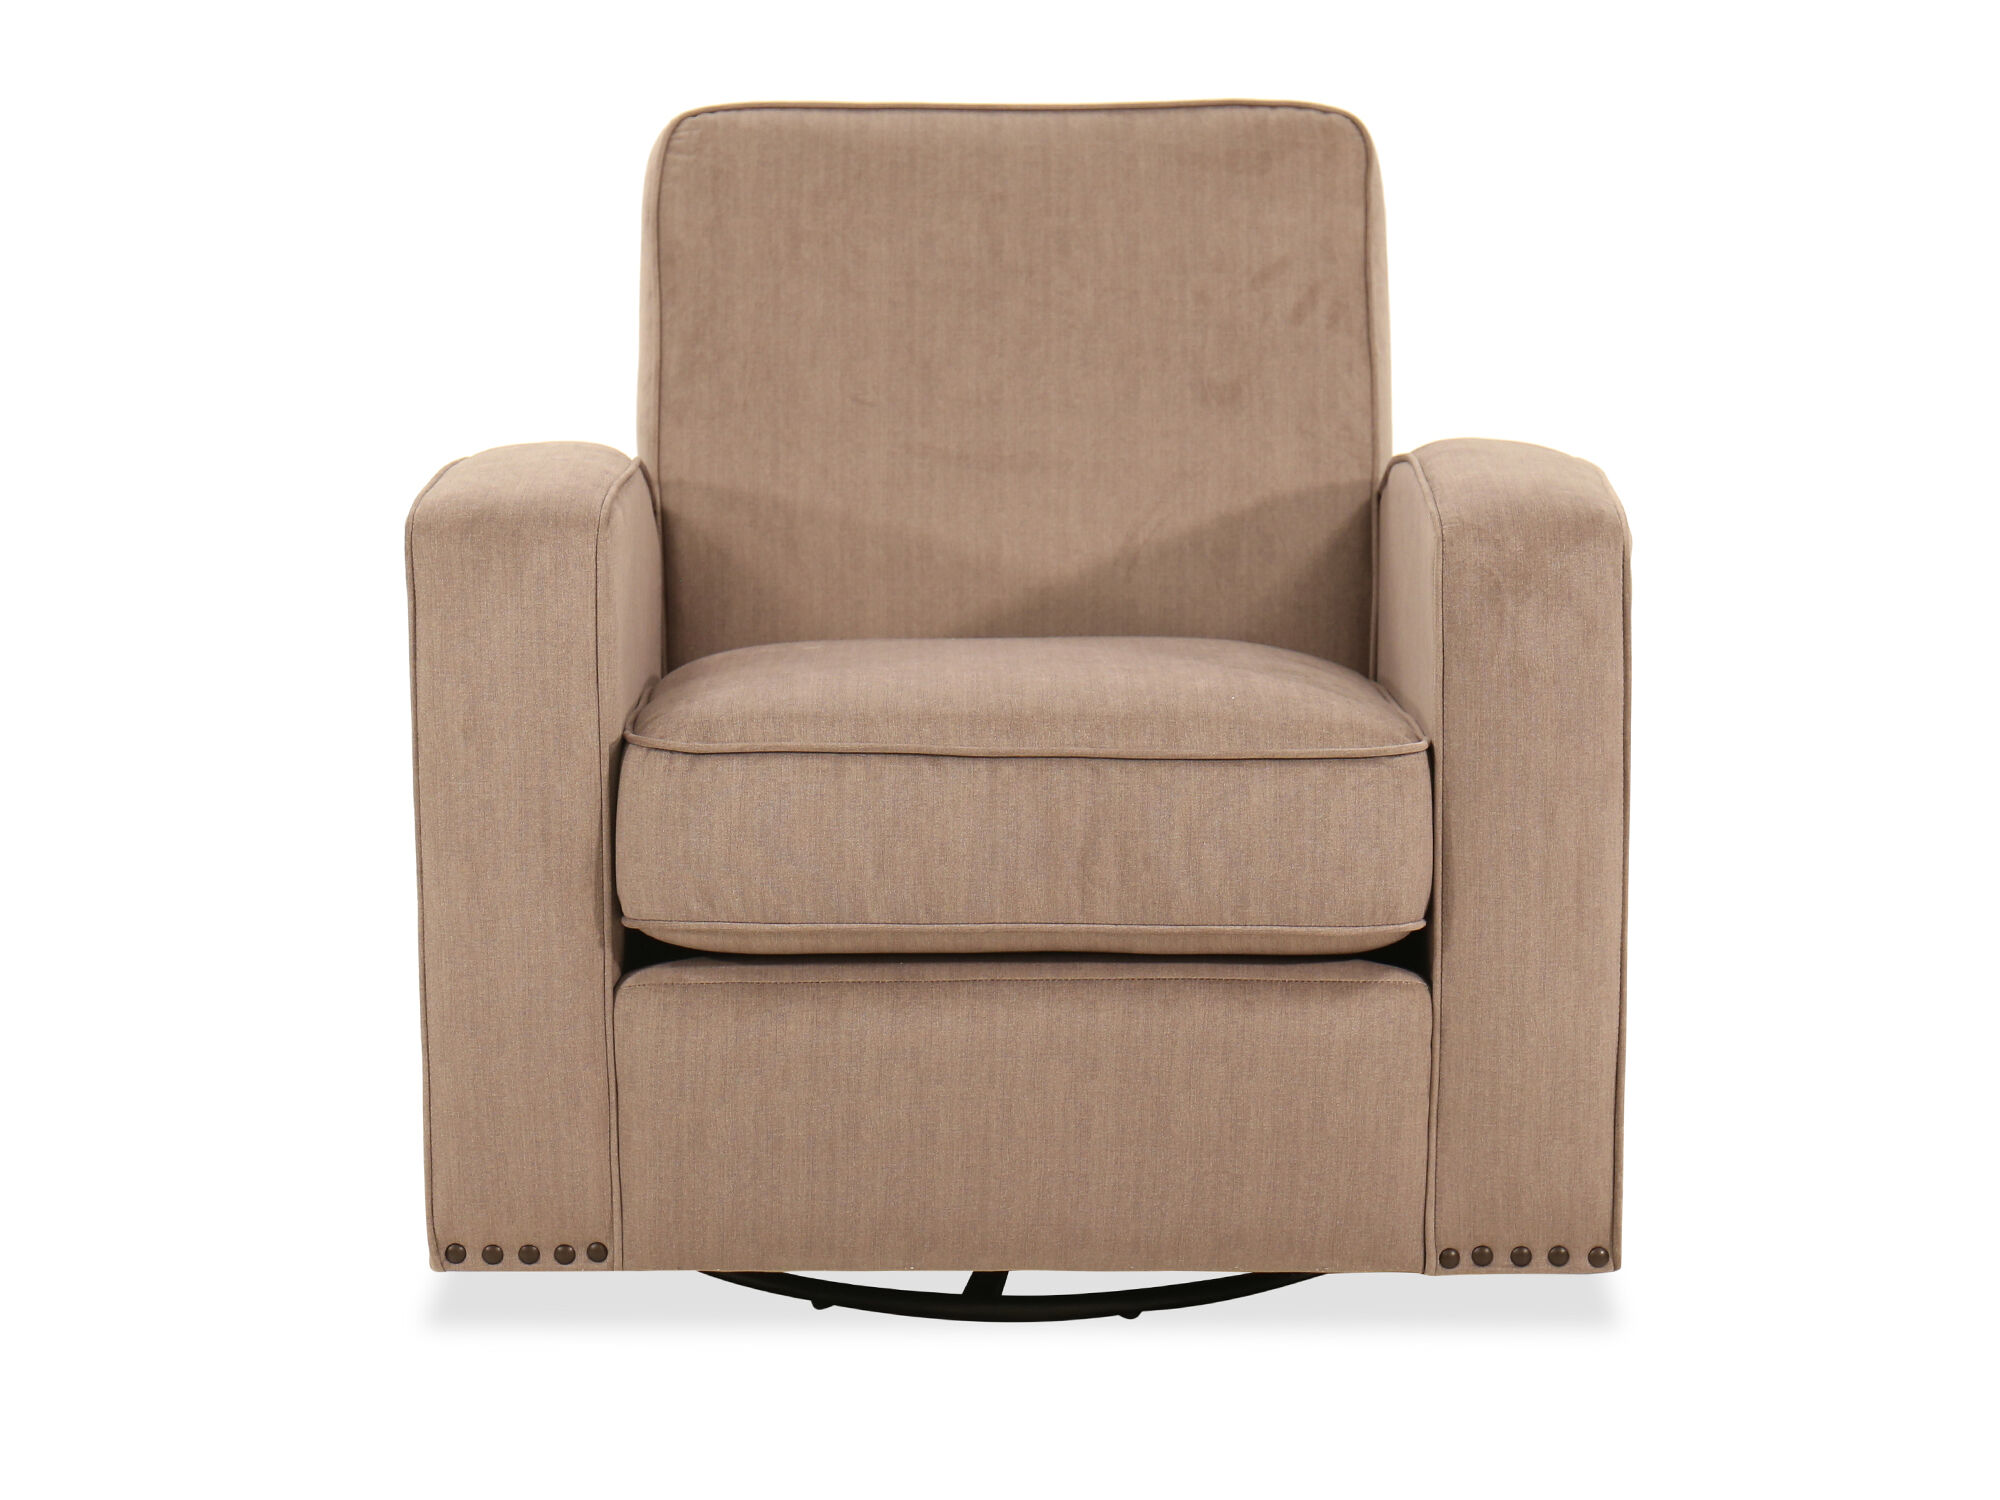 mesmerizing swivel chairs living room furniture | Nailhead-Trimmed Swivel Glider Chair in Light Brown ...